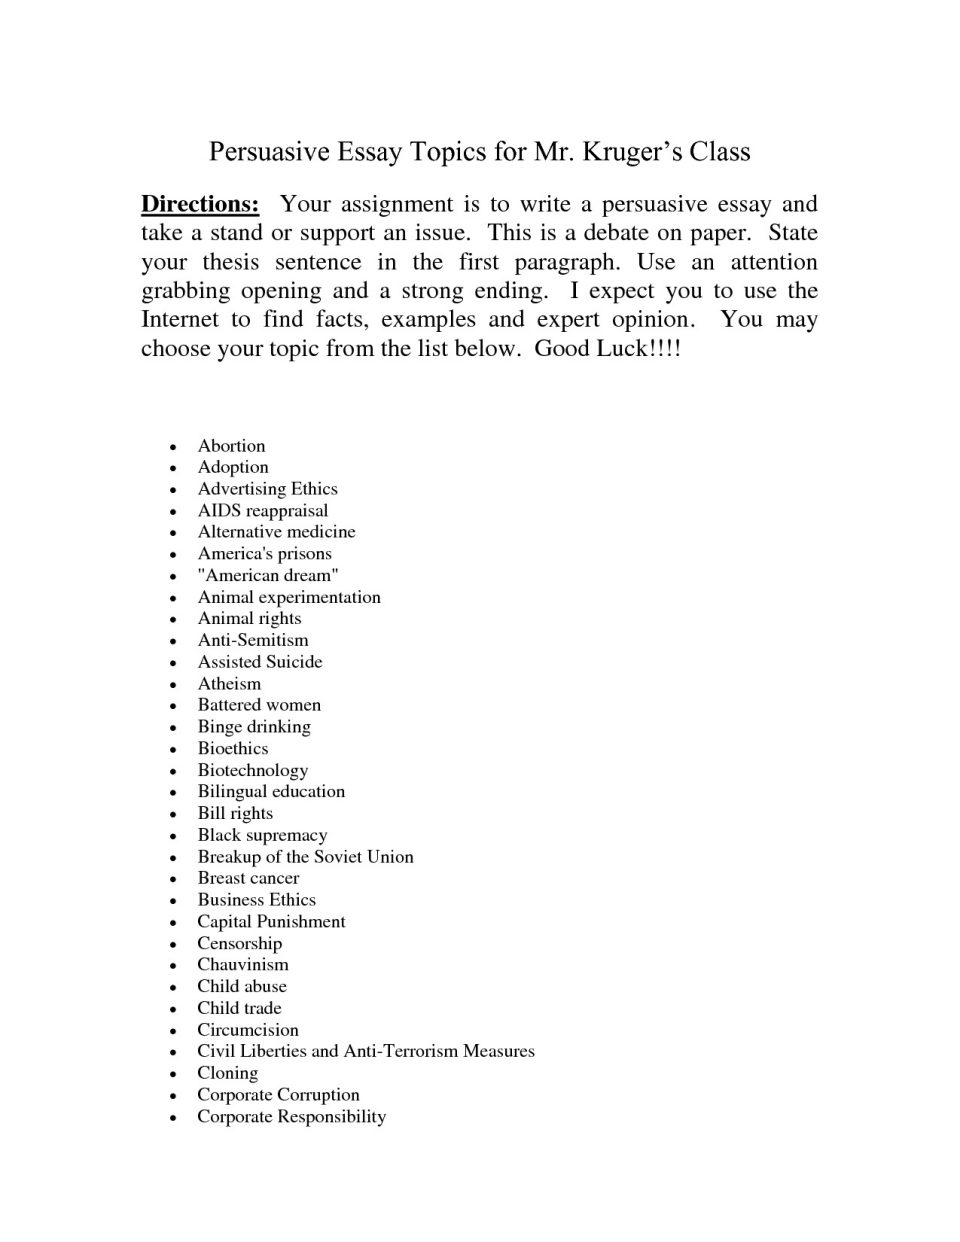 011 Research Paper Good Topic For Essay Barca Fontanacountryinn Within Persuasive Narrative Topics To Write Abo Easy About Personal Descriptive Informative Singular Best Ideas History High School Students In The Philippines Full